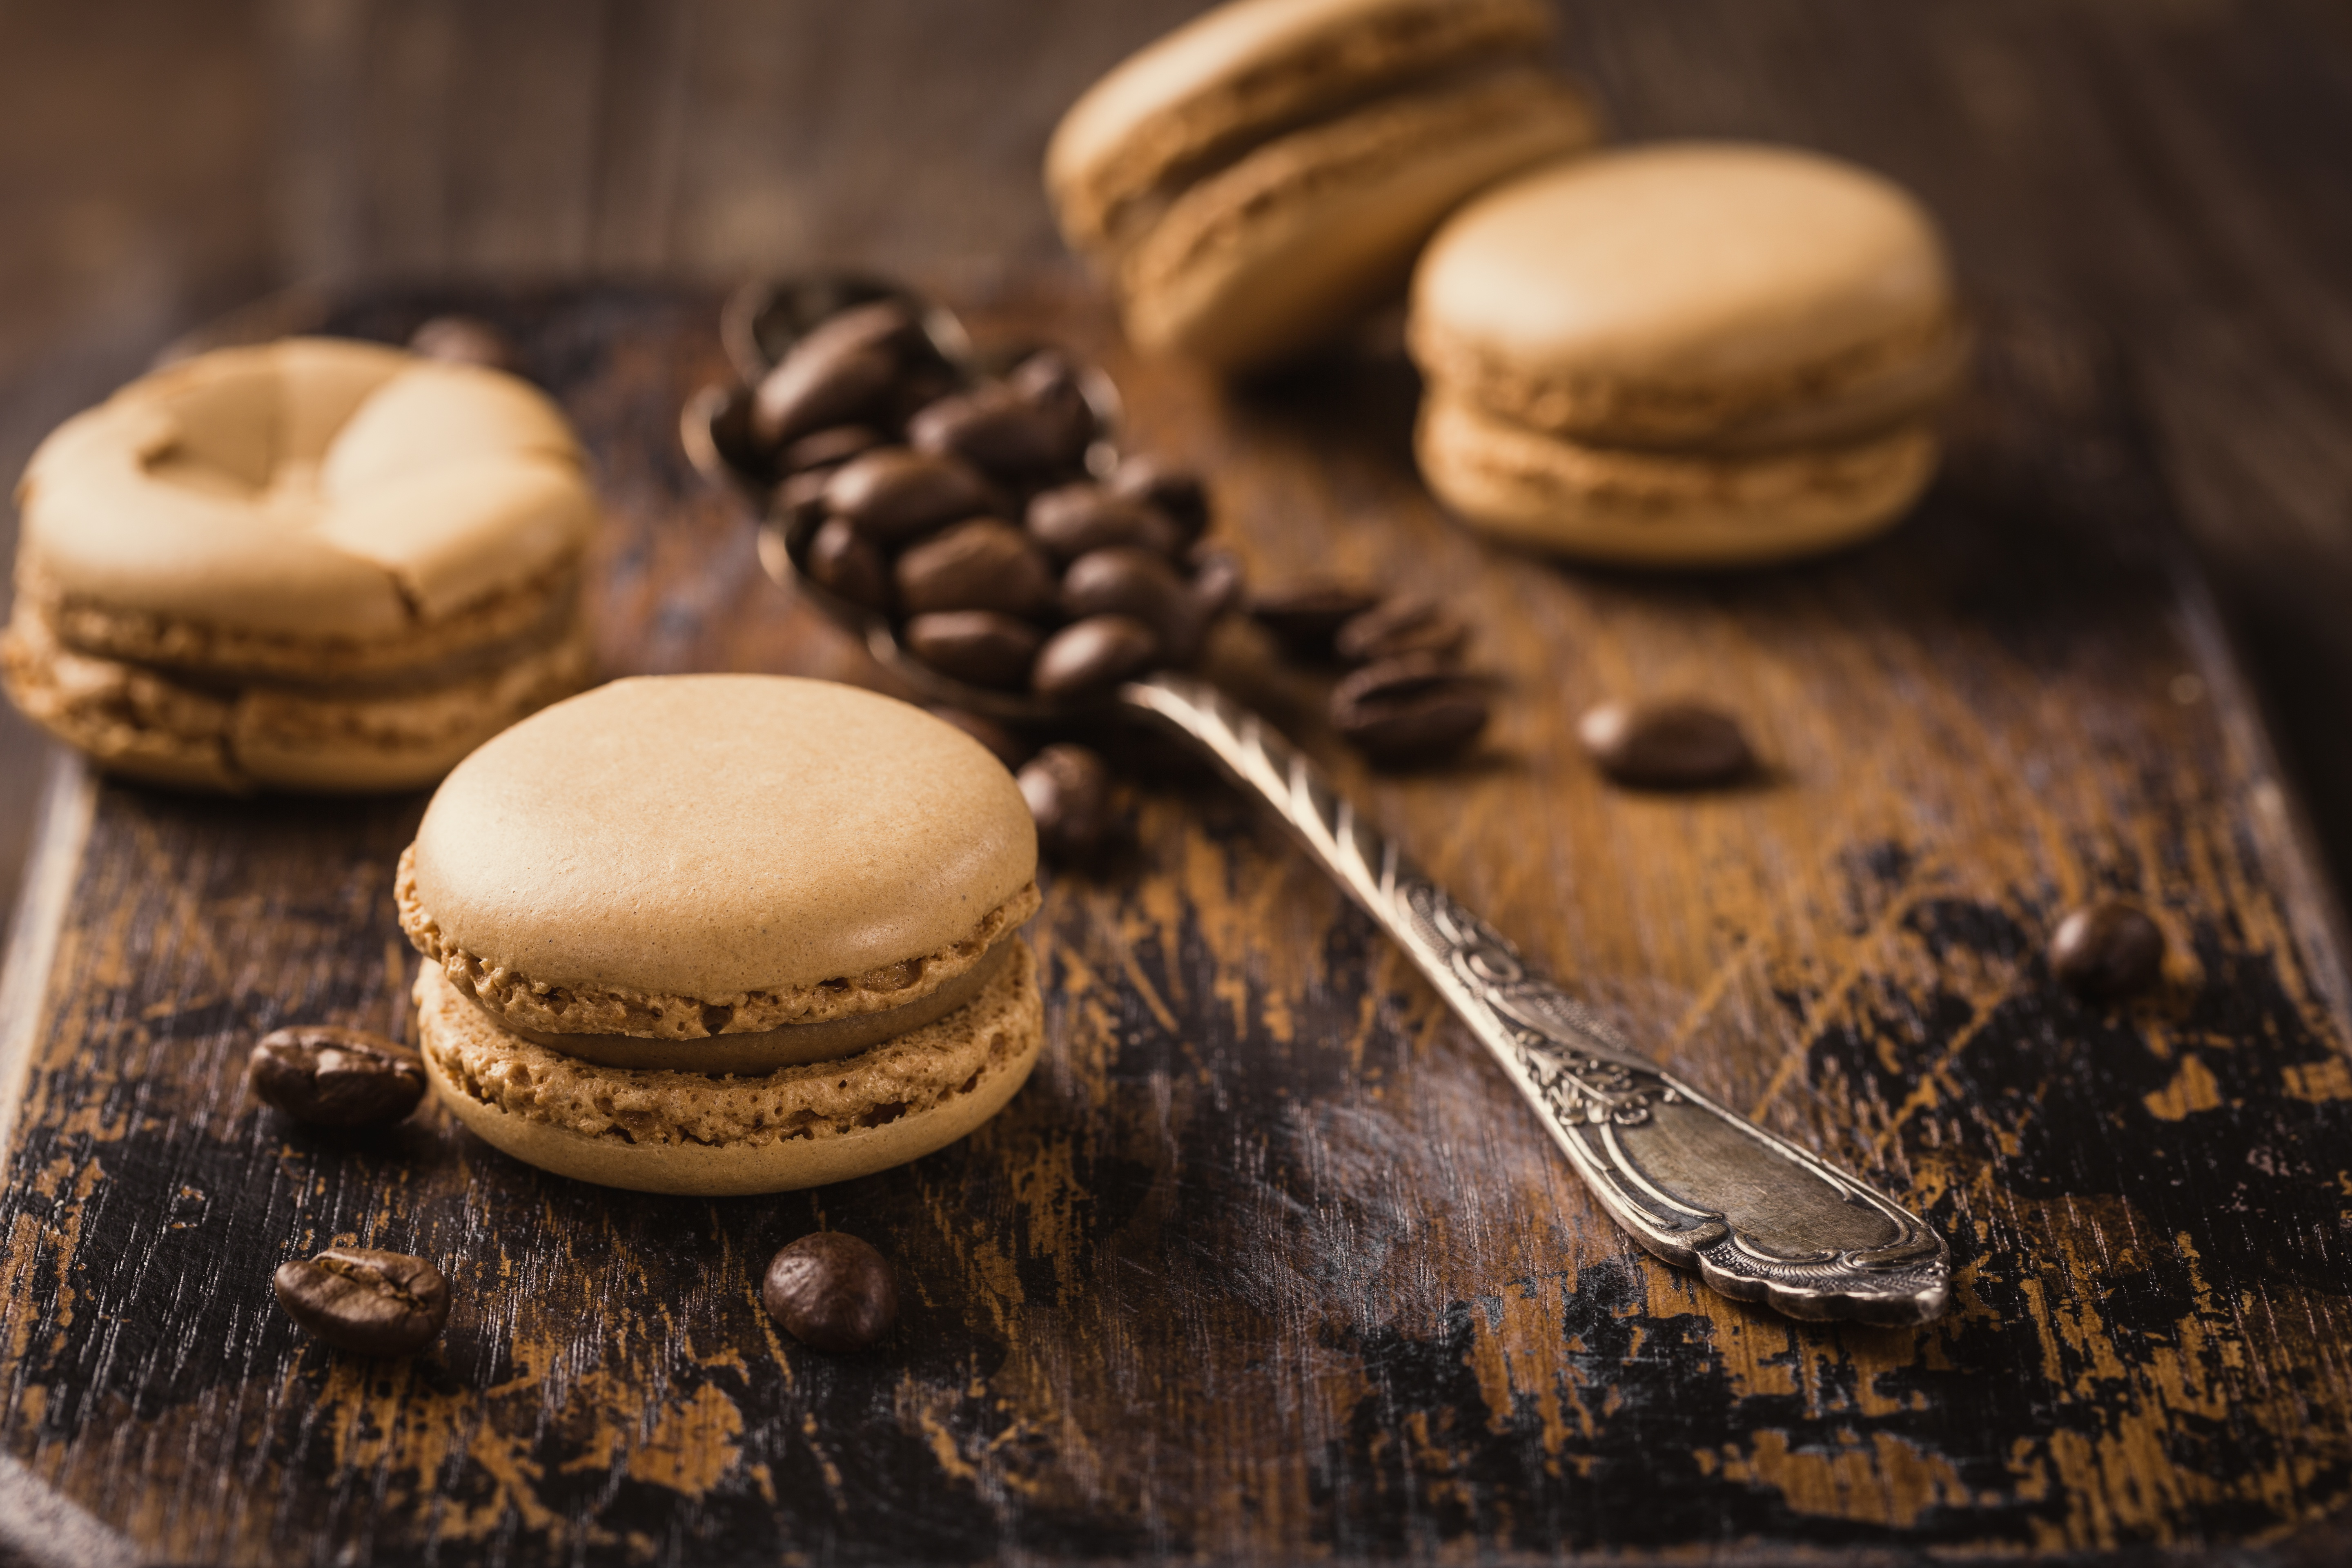 Coffee Beans Depth Of Field Macaron Spoon Still Life Sweets 5760x3840